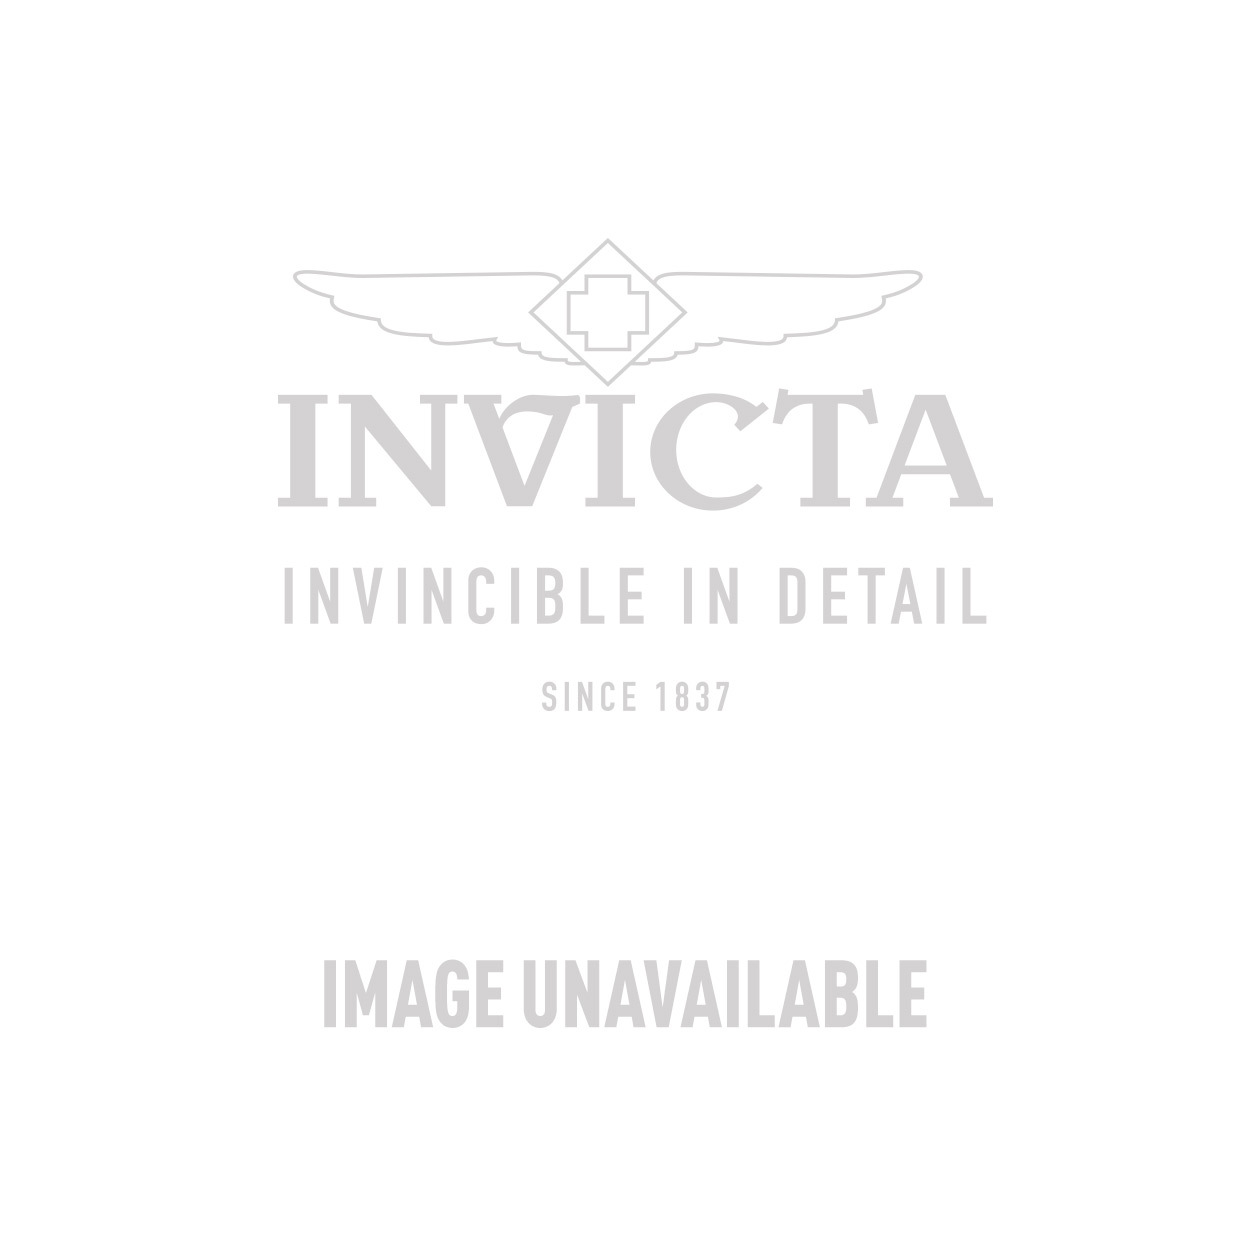 Invicta Angel Swiss Movement Quartz Watch - Gold case with White tone Leather band - Model 12990